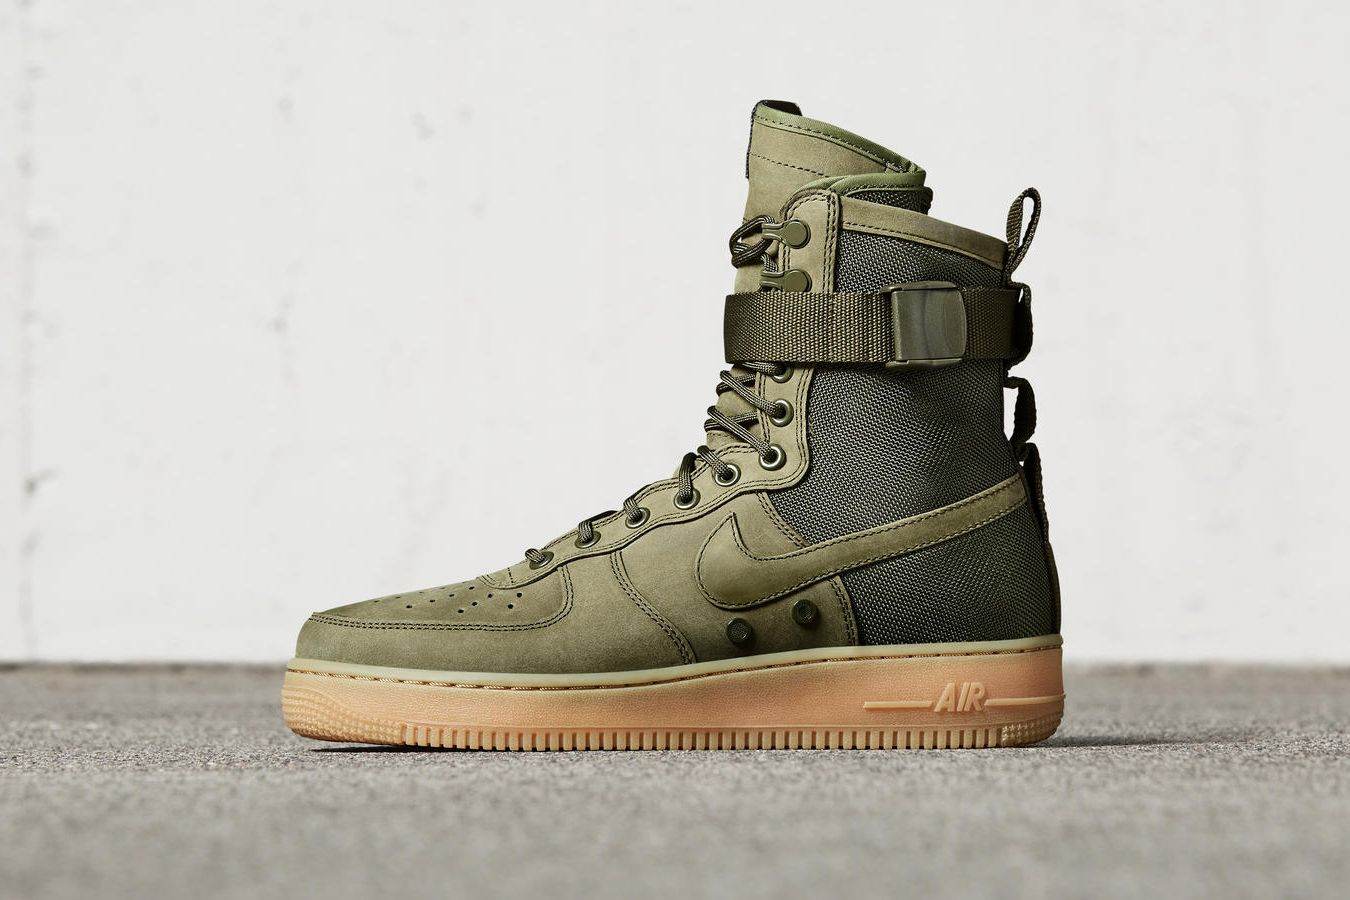 Sneakers Nike Air Force 1 special field desert camo in the